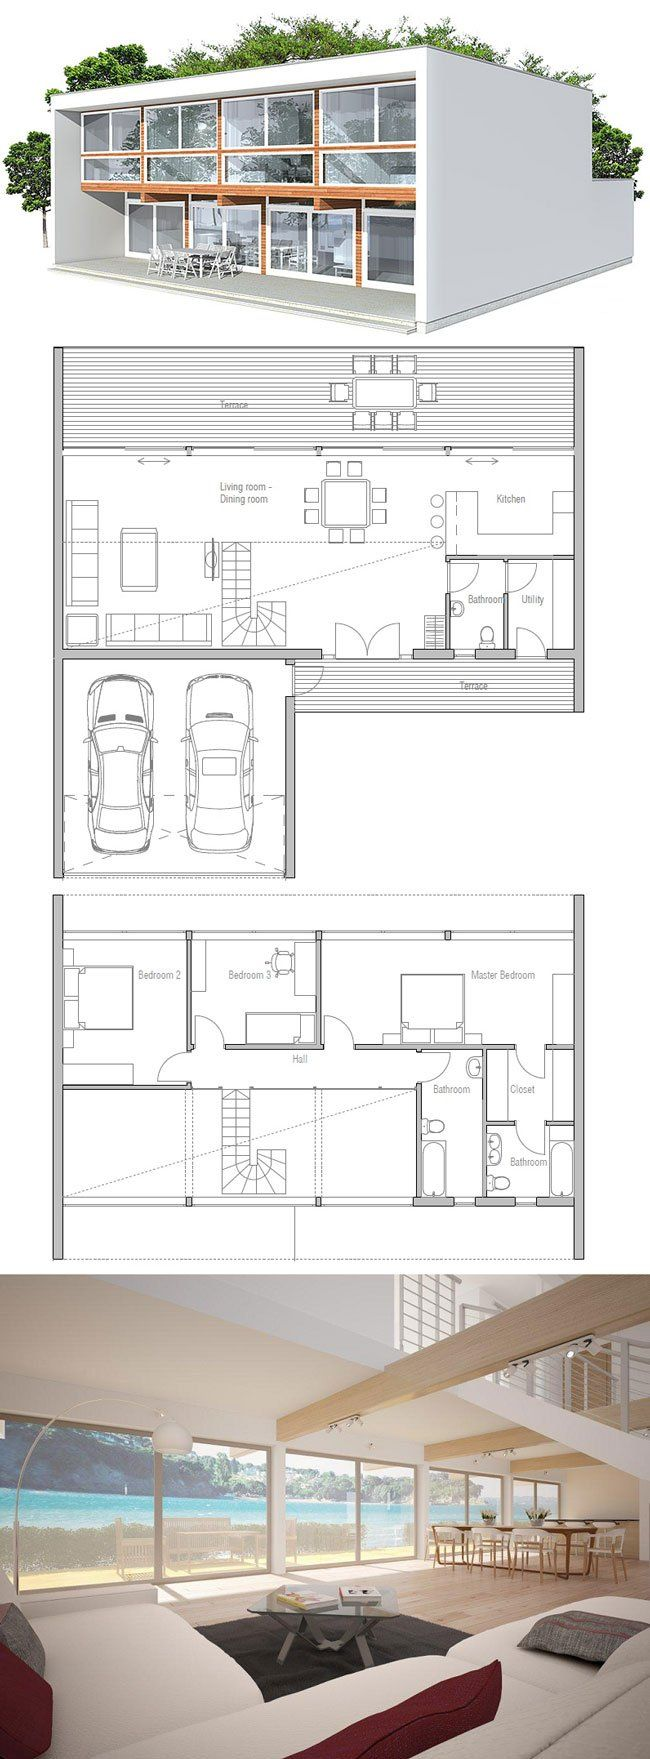 105 best architecture house plans images on pinterest home minimalist contemporary home plan want a bit bigger kitchen and min room good for flat lot with view greenbelt